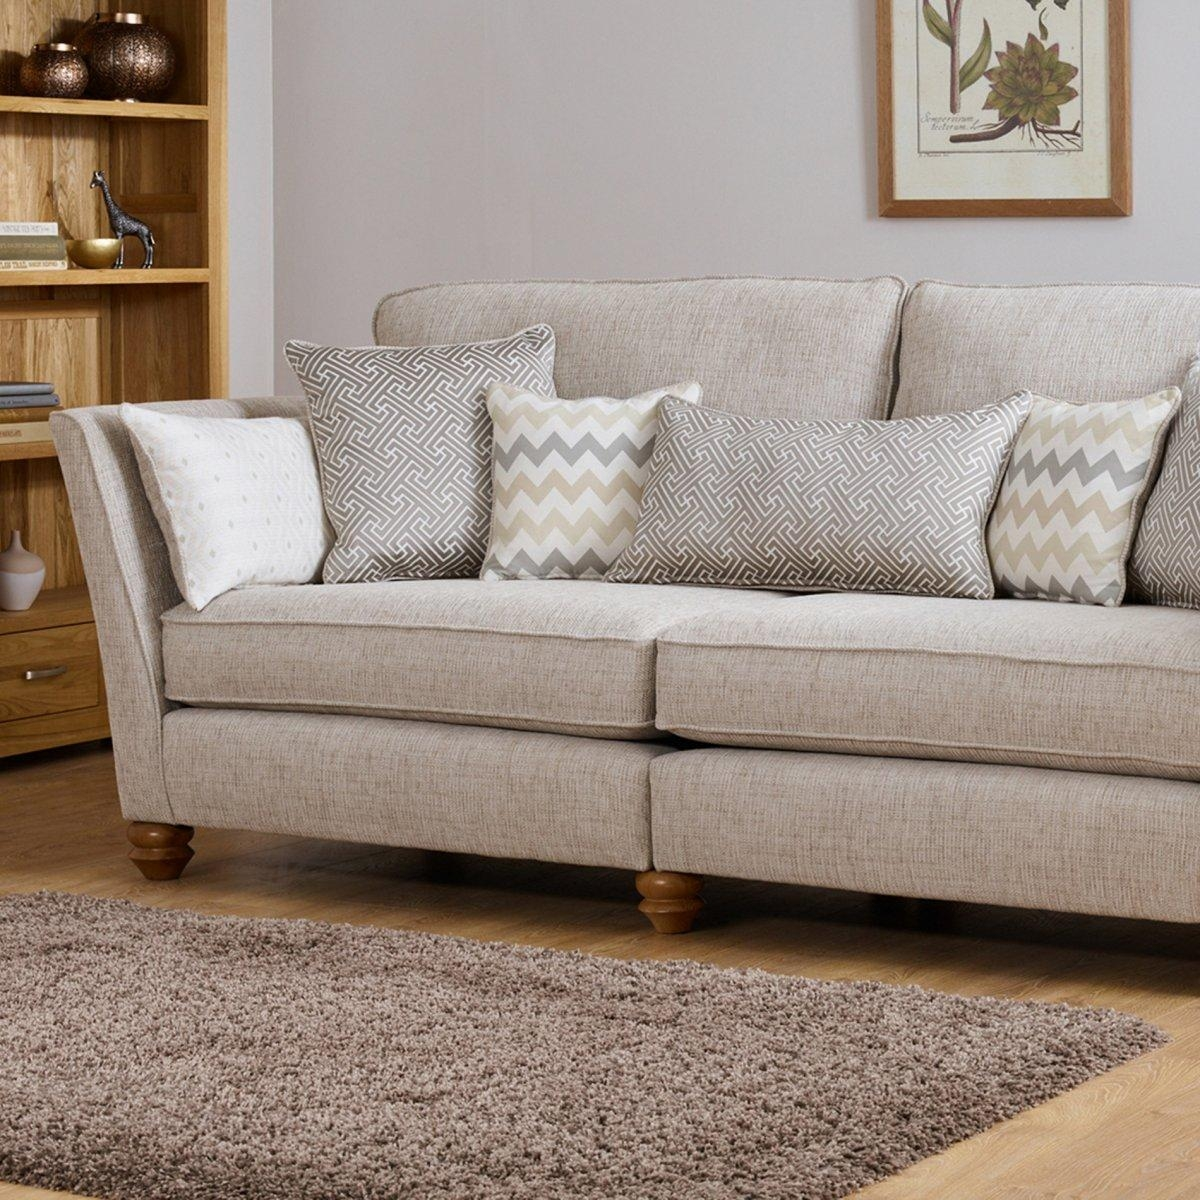 Gainsborough 3 Seater Sofa In Beige | Oak Furniture Land With Regard To Three Seater Sofas (View 18 of 20)